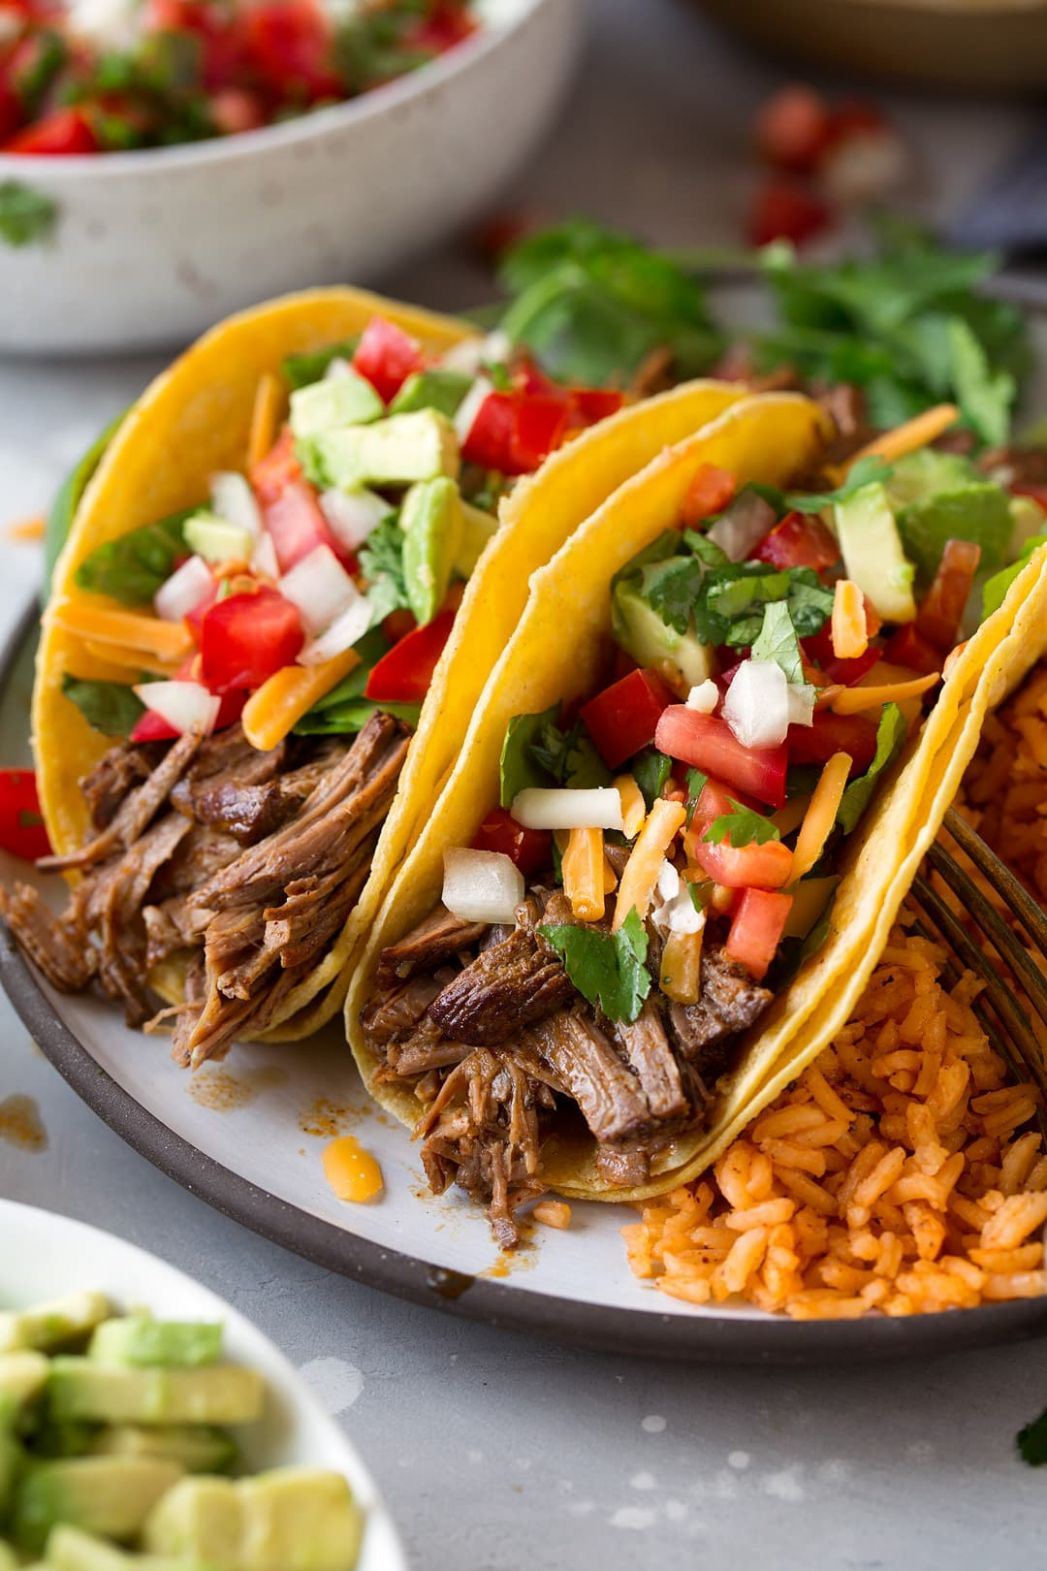 Slow Cooker Shredded Beef Tacos - Cooking Classy - Recipes Beef Tacos